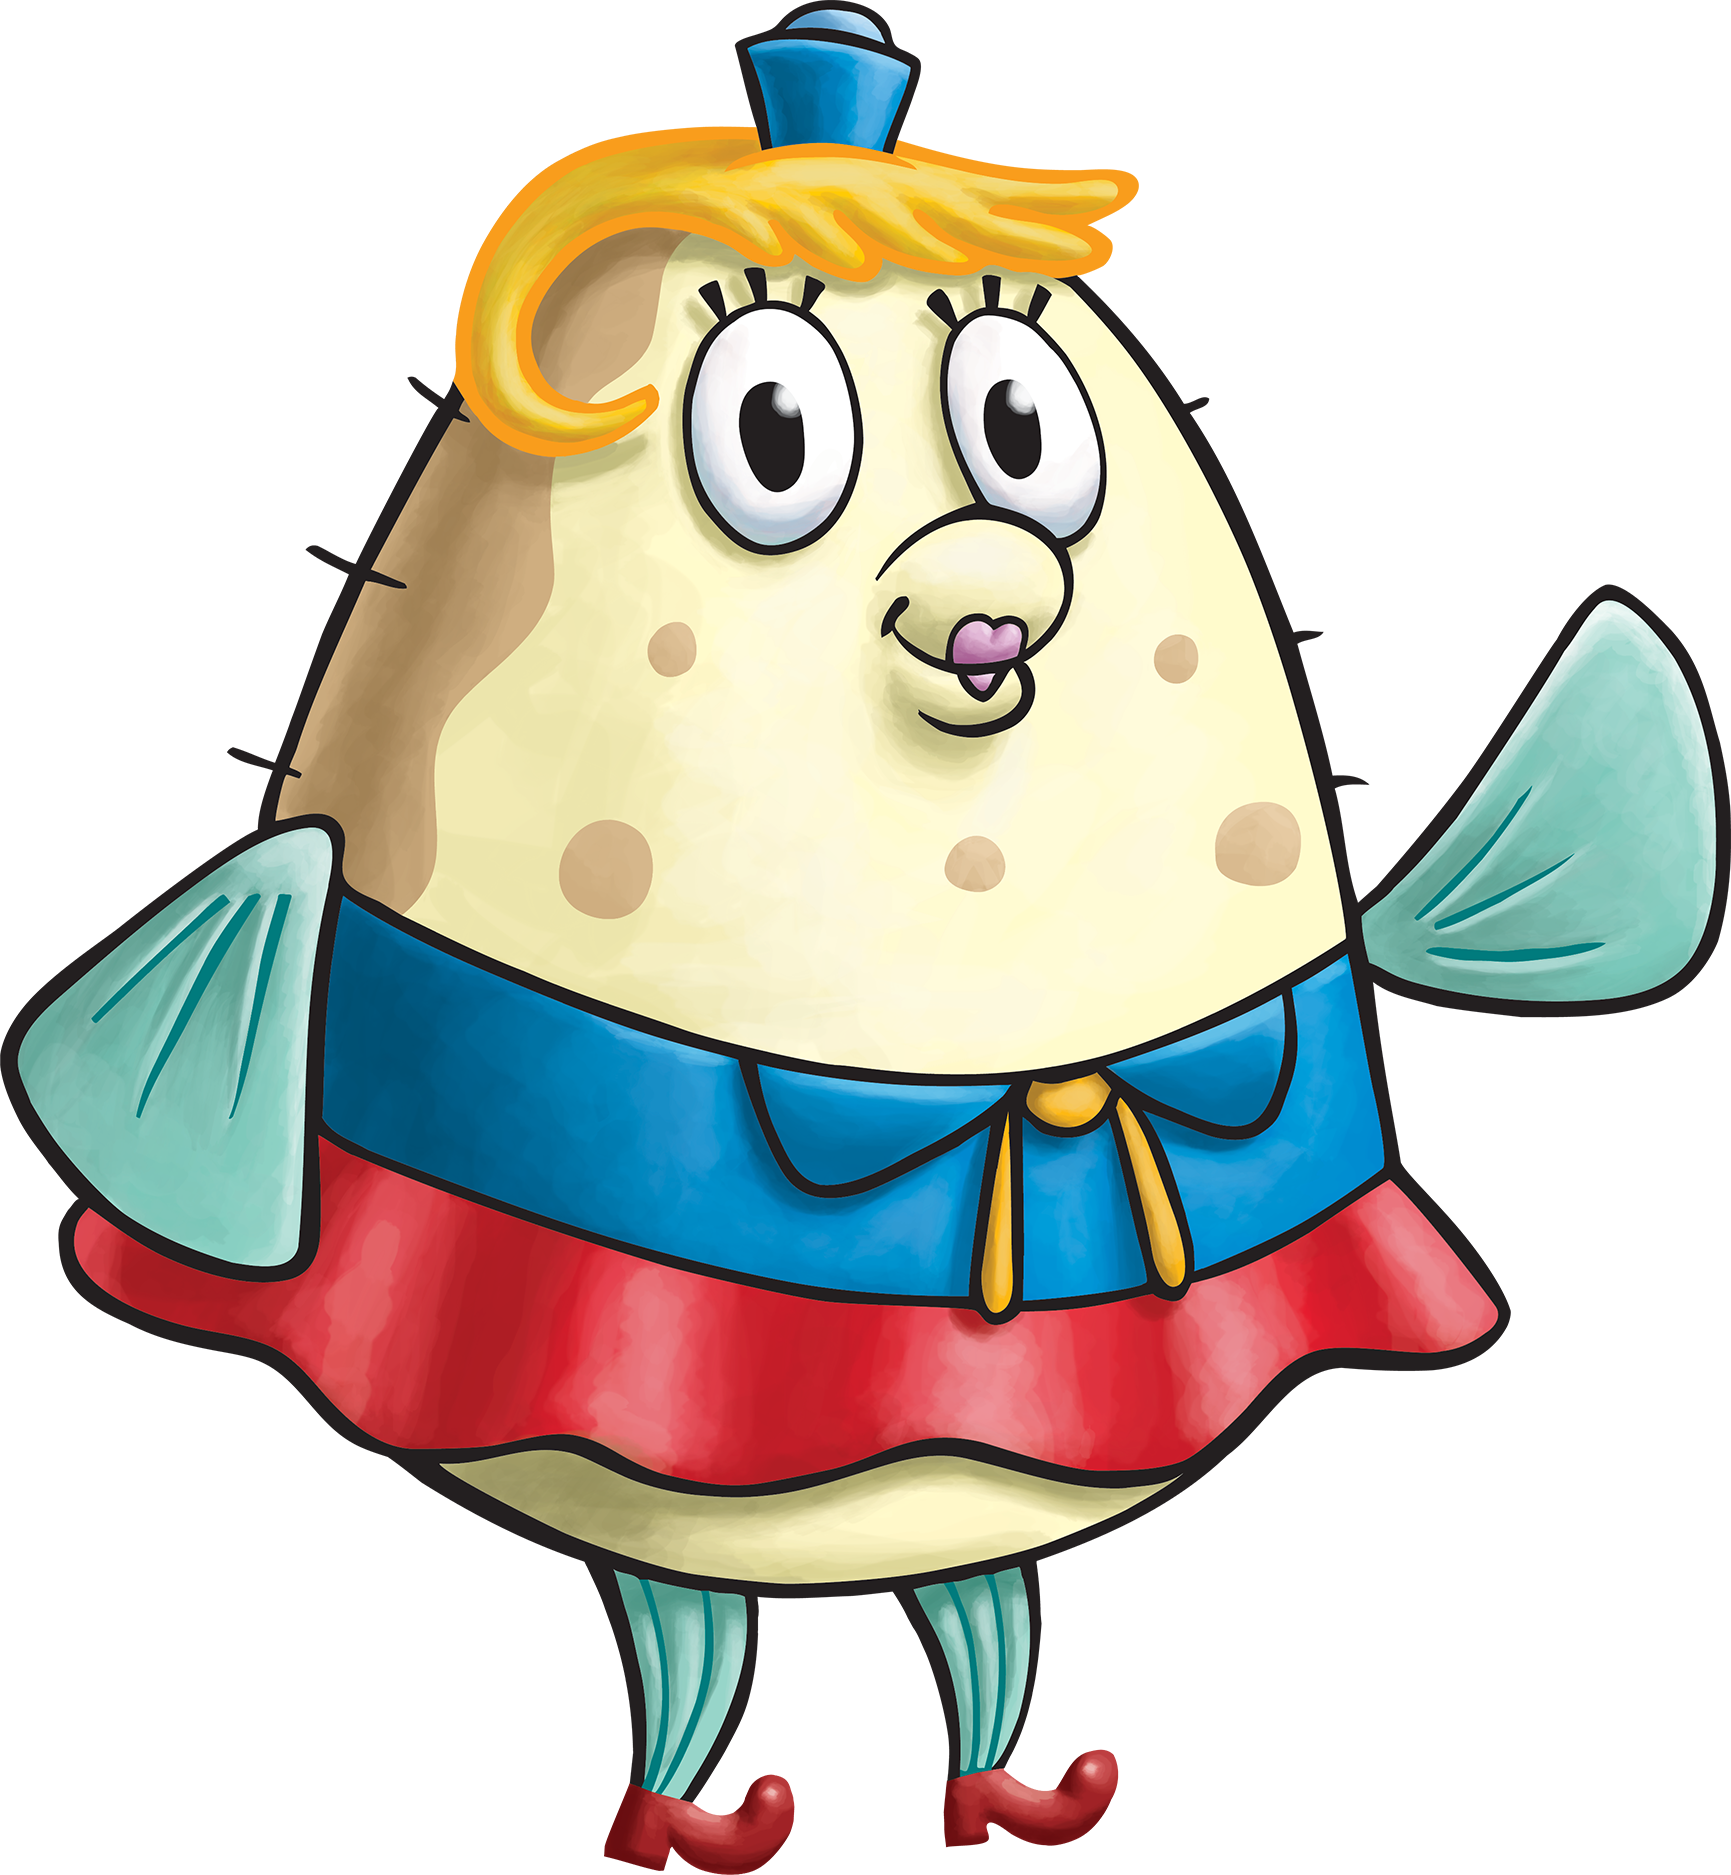 Mrs puff and spongebob